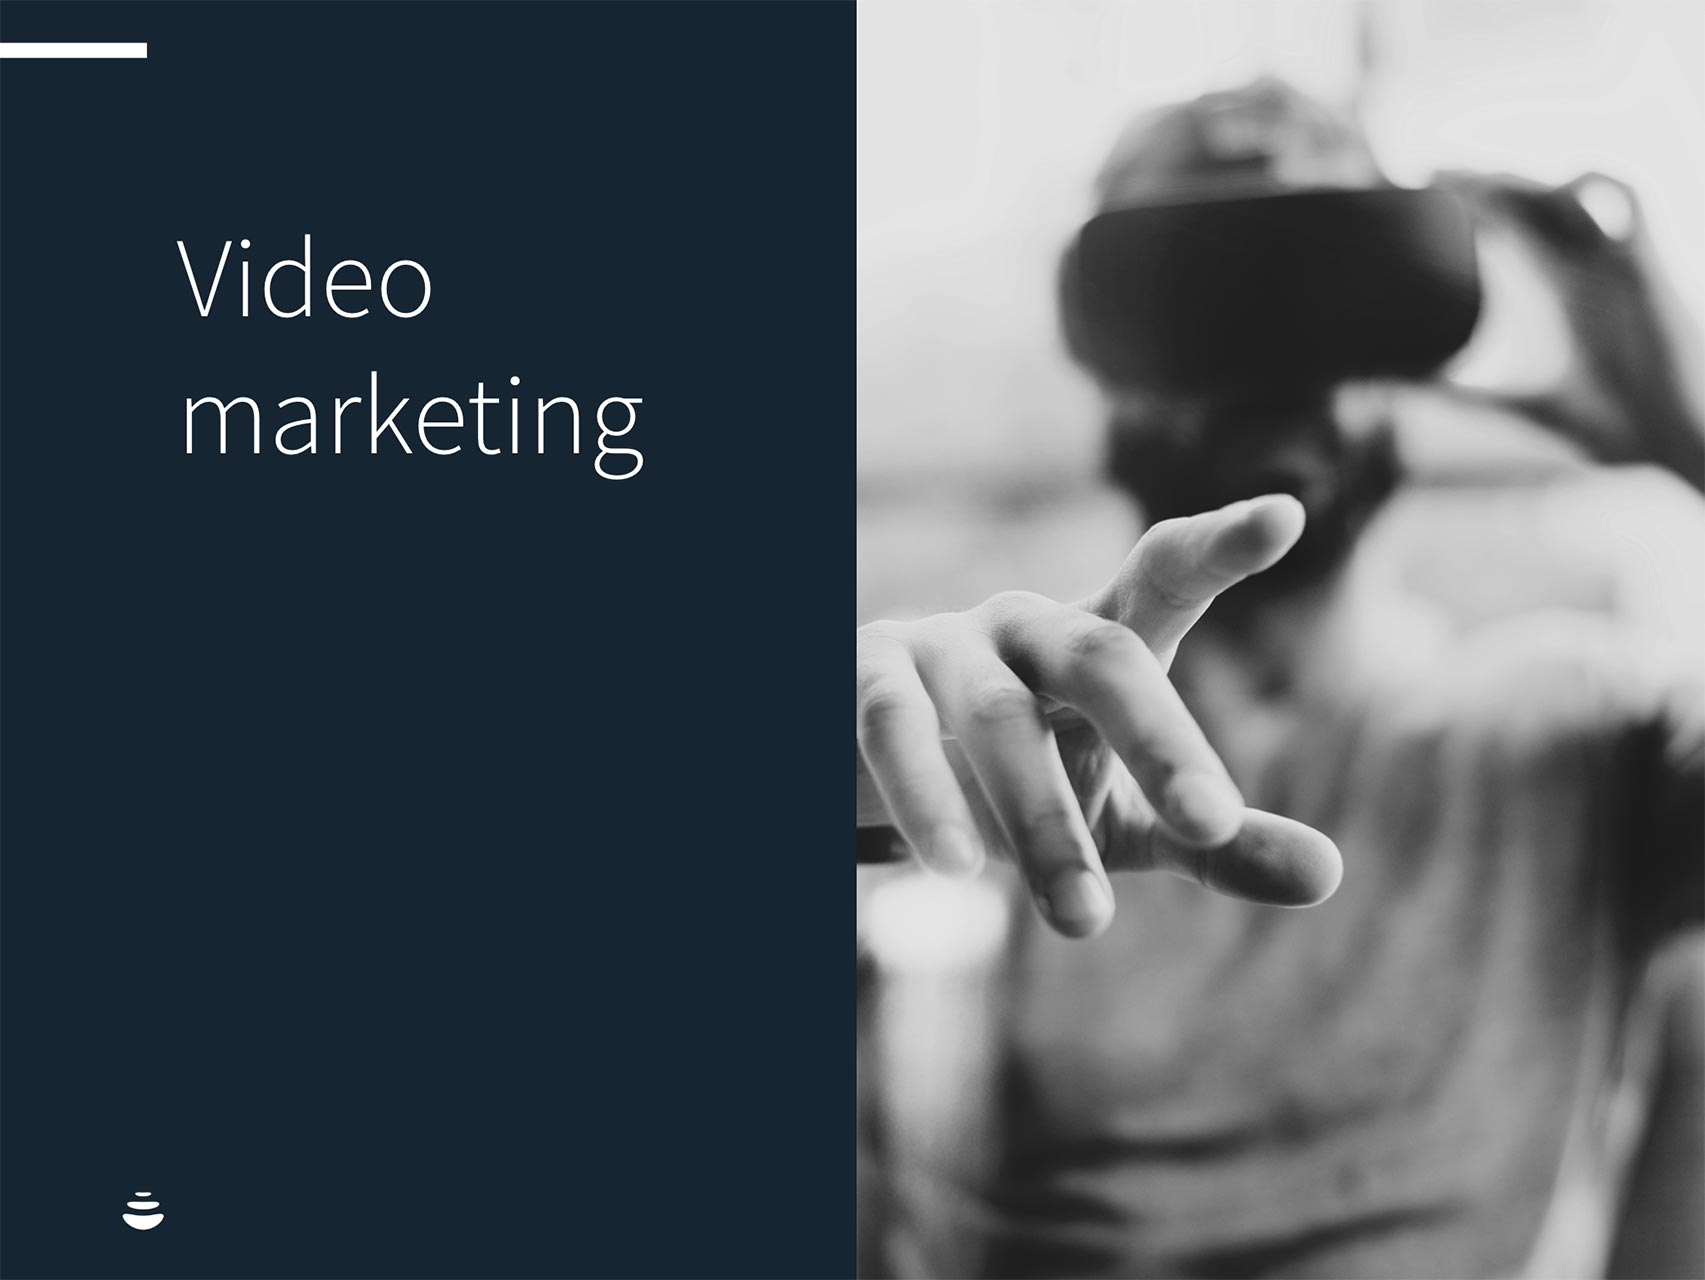 marketing trend 2019 2020, Video marketing